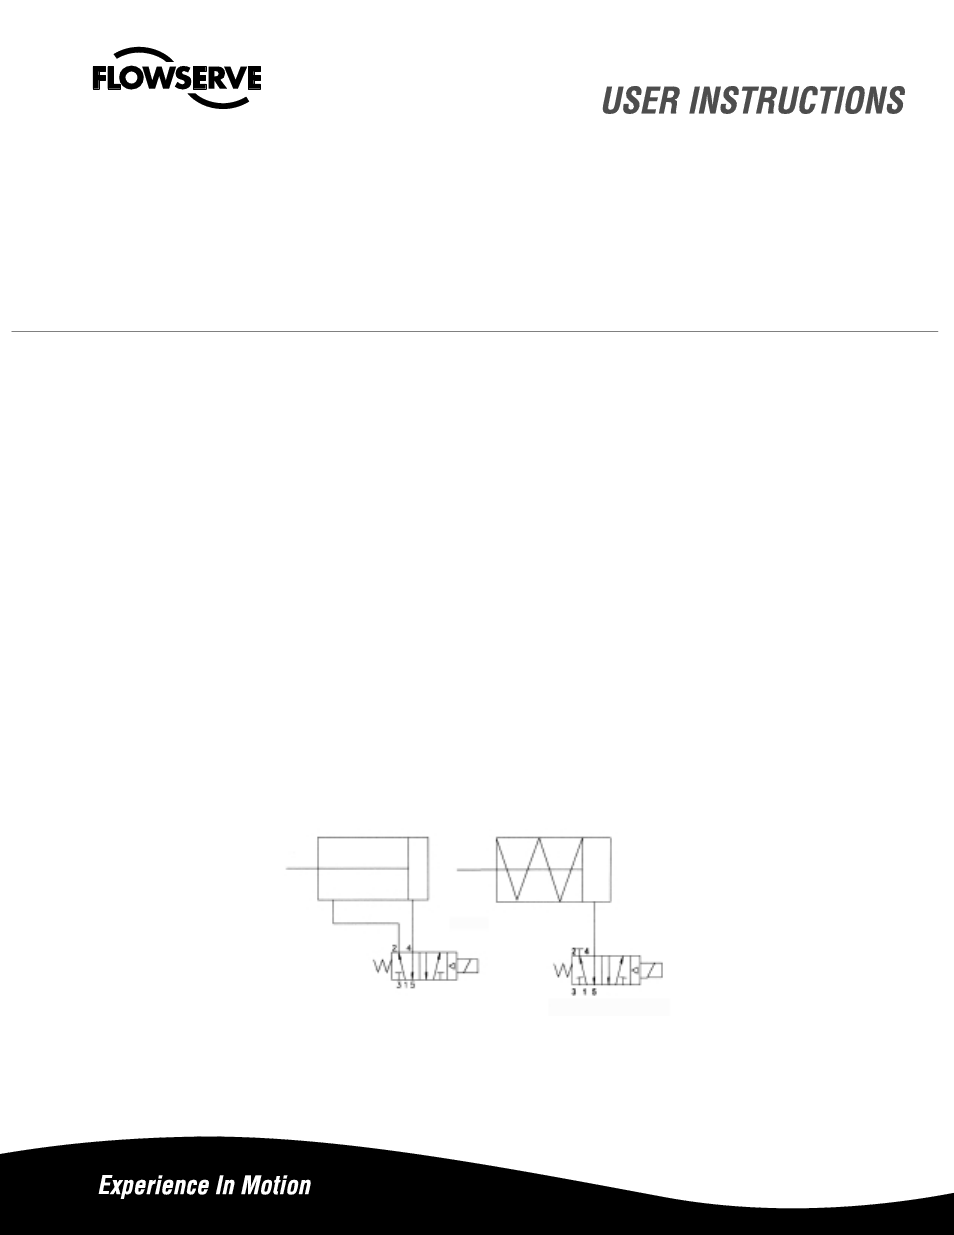 flowserve aviator ii valve controller user manual 8 pages